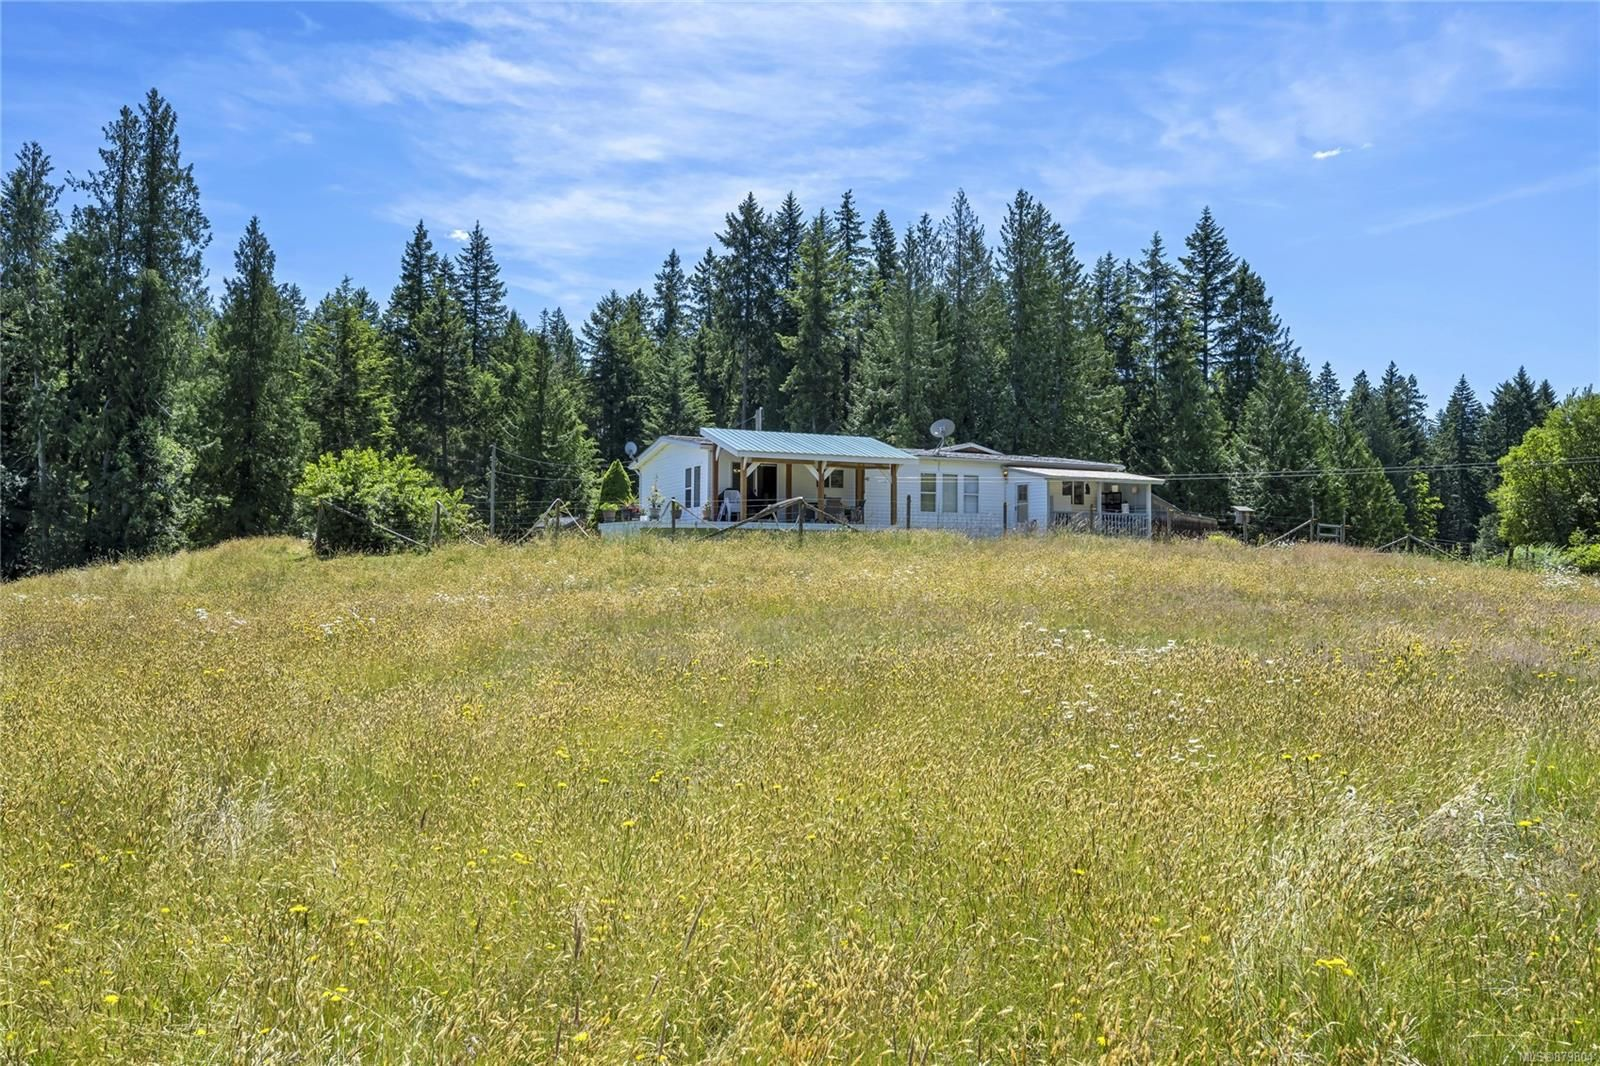 Photo 10: Photos: 3596 Riverside Rd in : ML Cobble Hill Manufactured Home for sale (Malahat & Area)  : MLS®# 879804